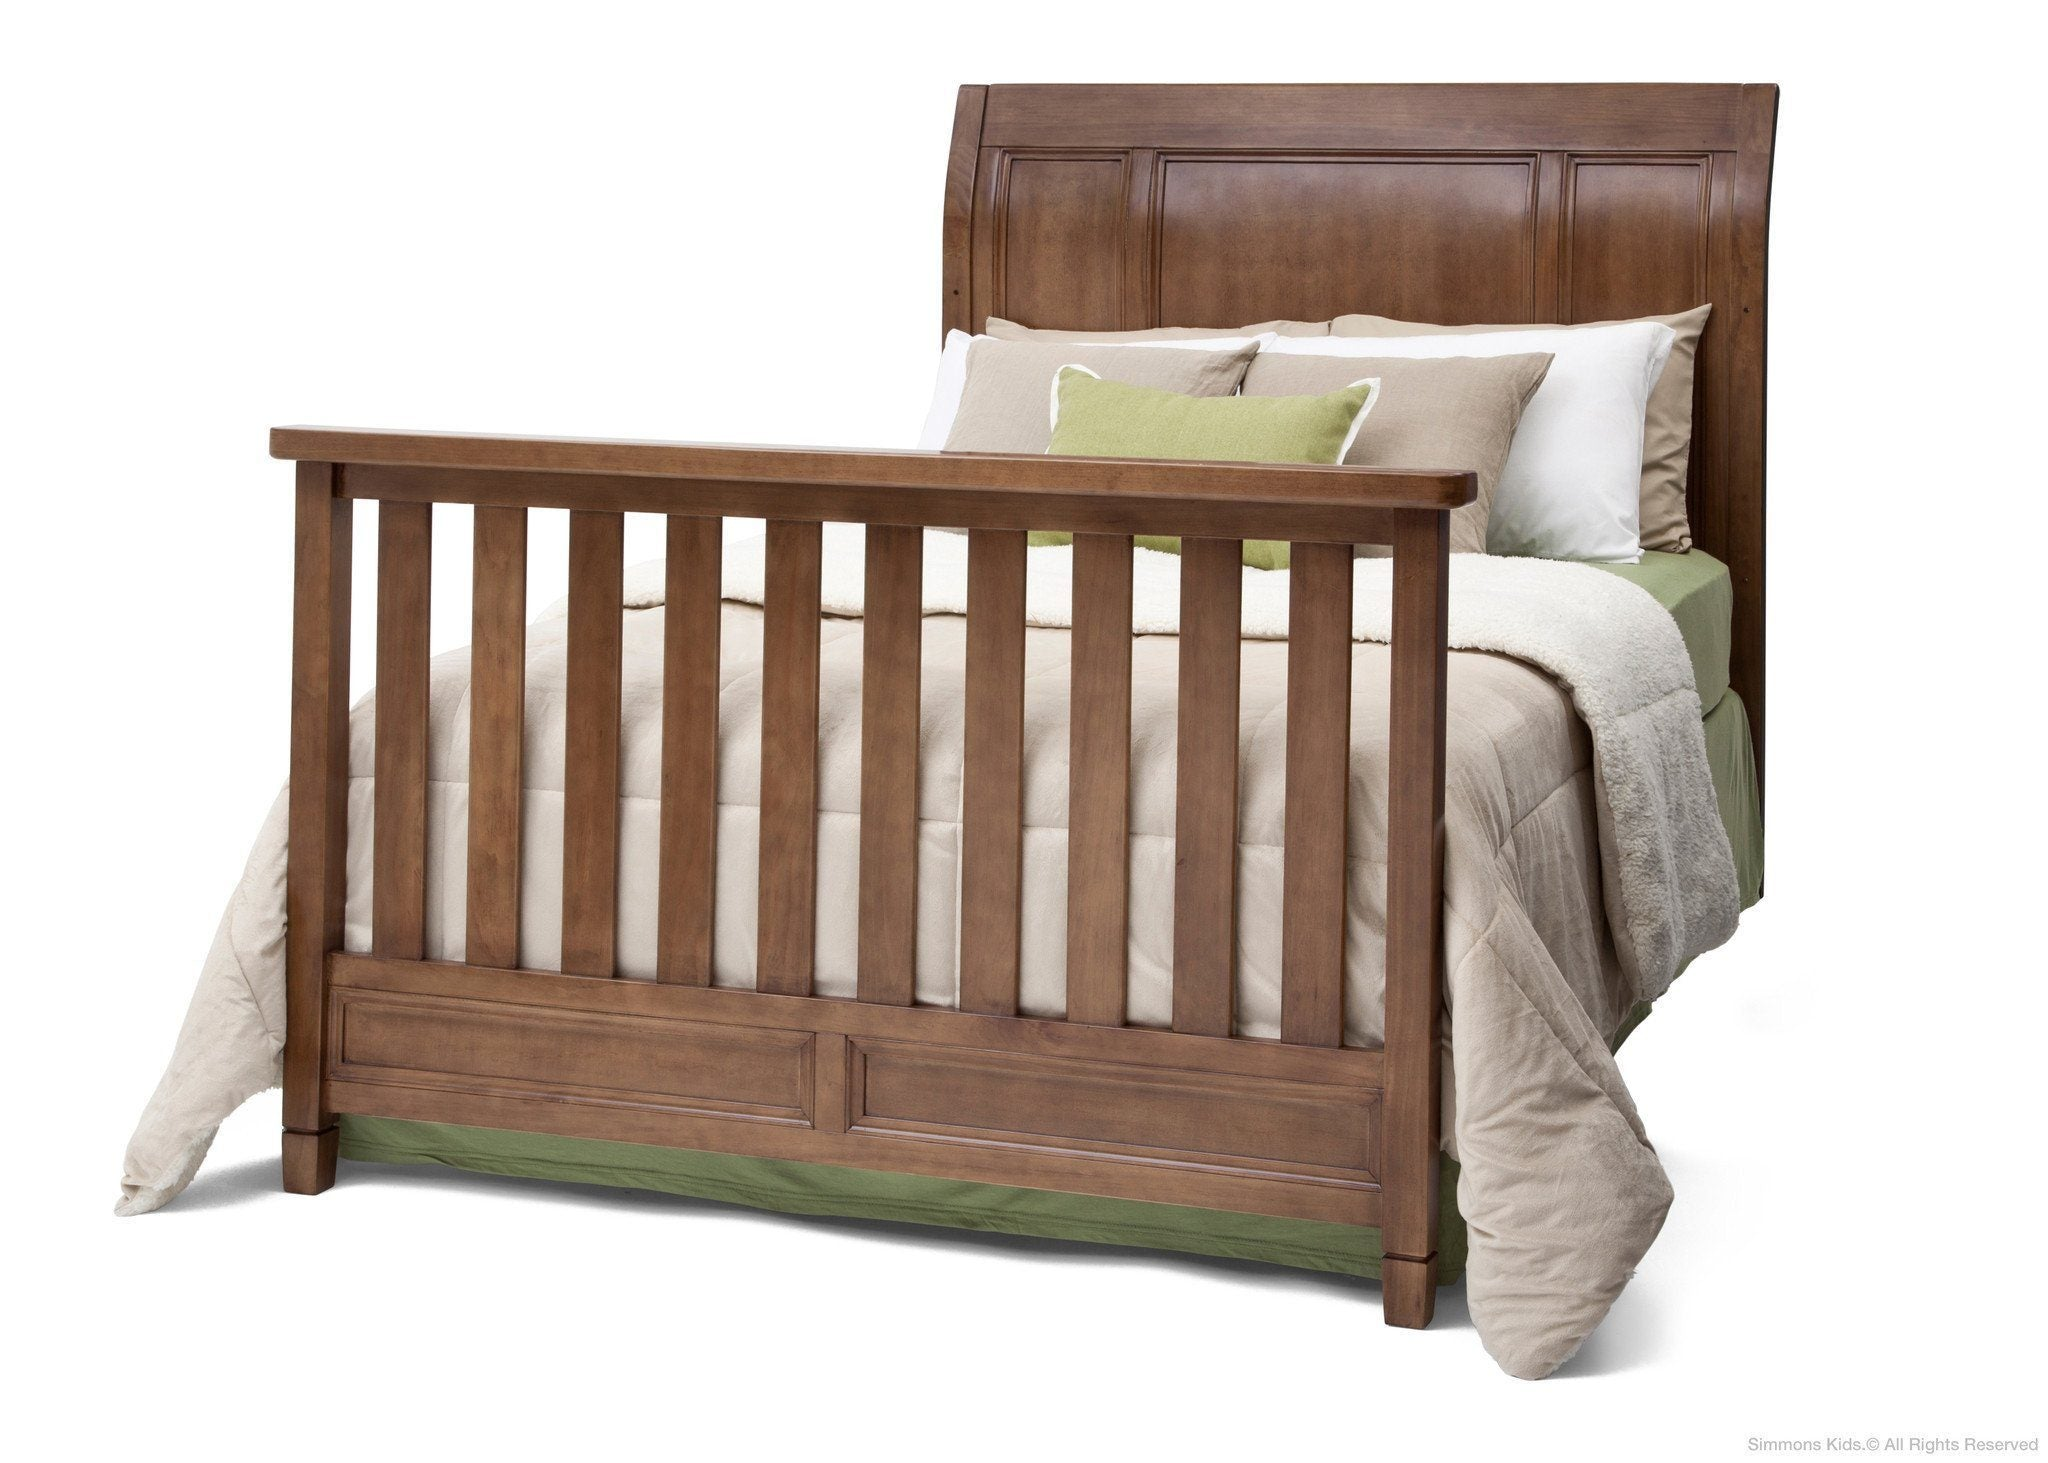 design beds homes bed atlantic trundle furniture feed children size simple very dark twin espresso full for in bedding of sleigh kids